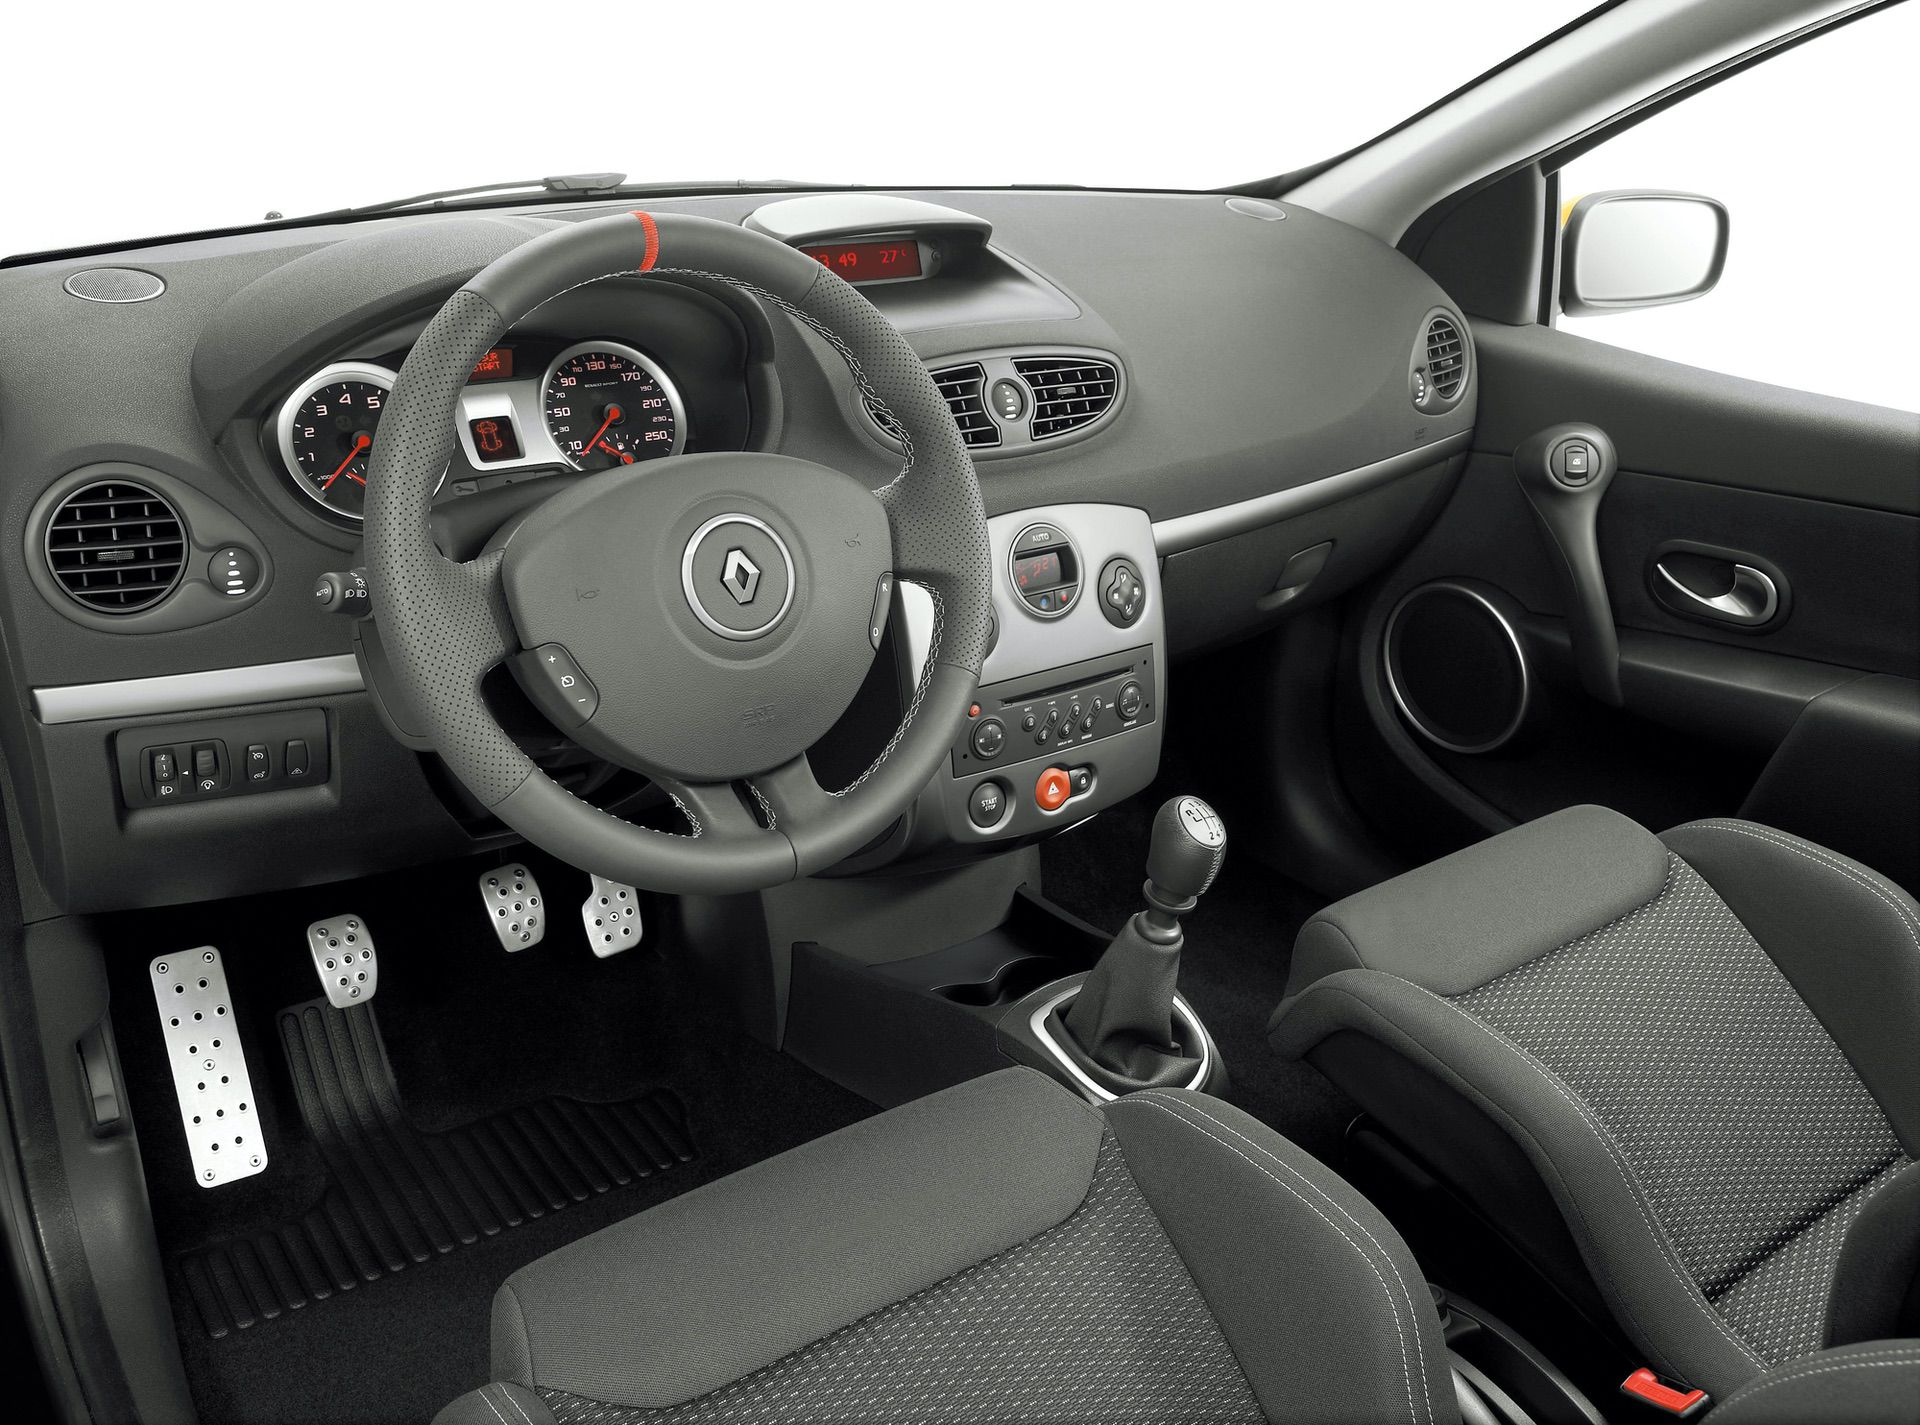 2020-30-years-of-Renault-CLIO-Renault-CLIO-III-2005-2012-17